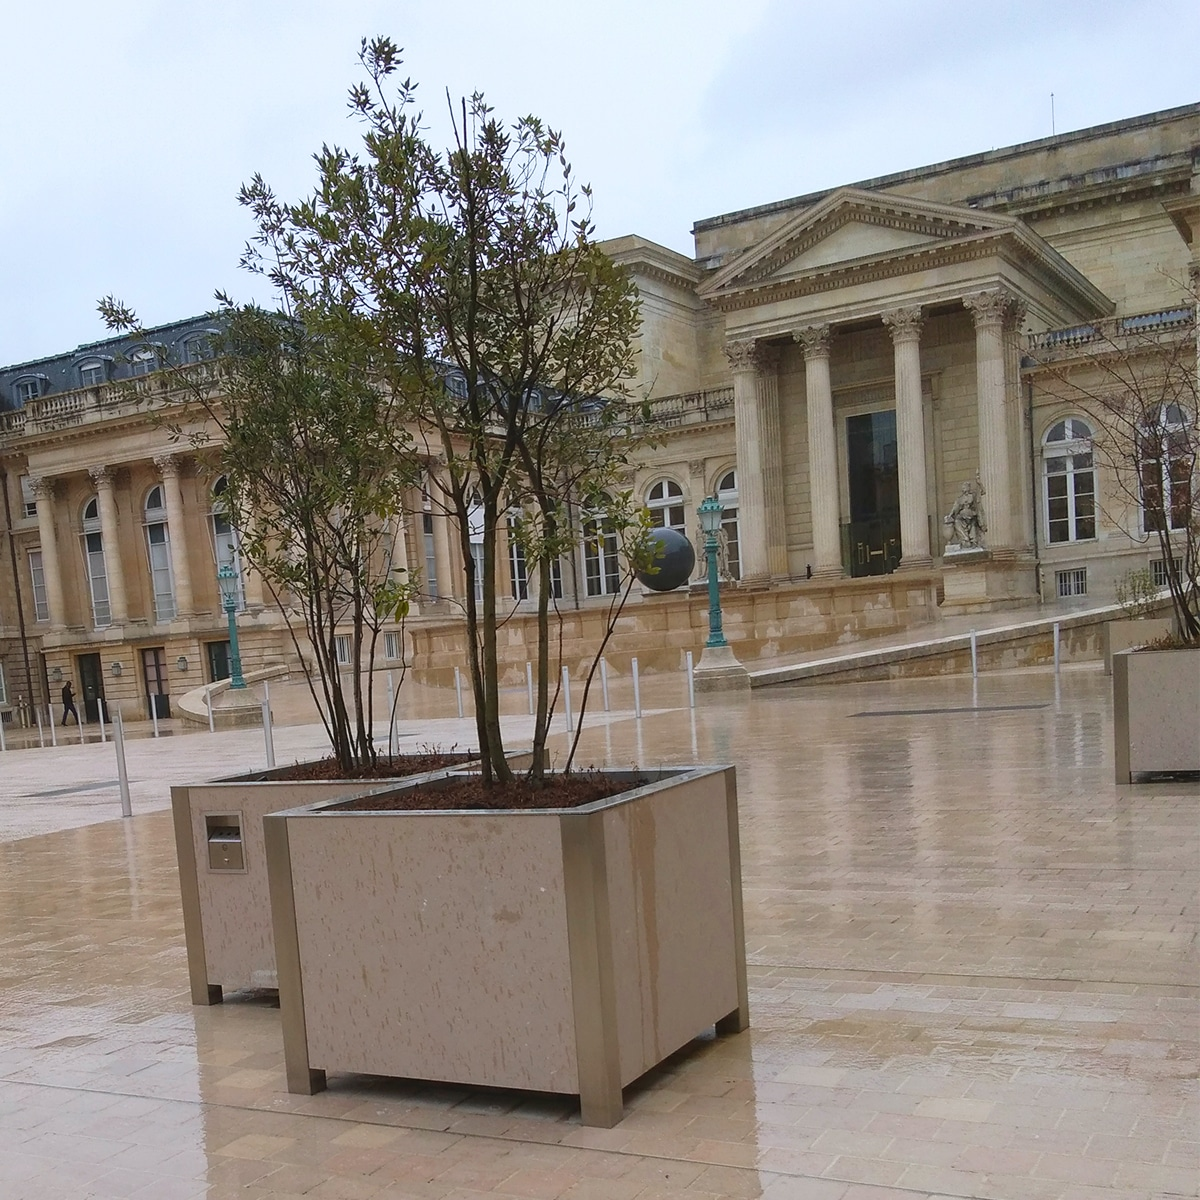 ATECH-planters-french-national-assembly-paris